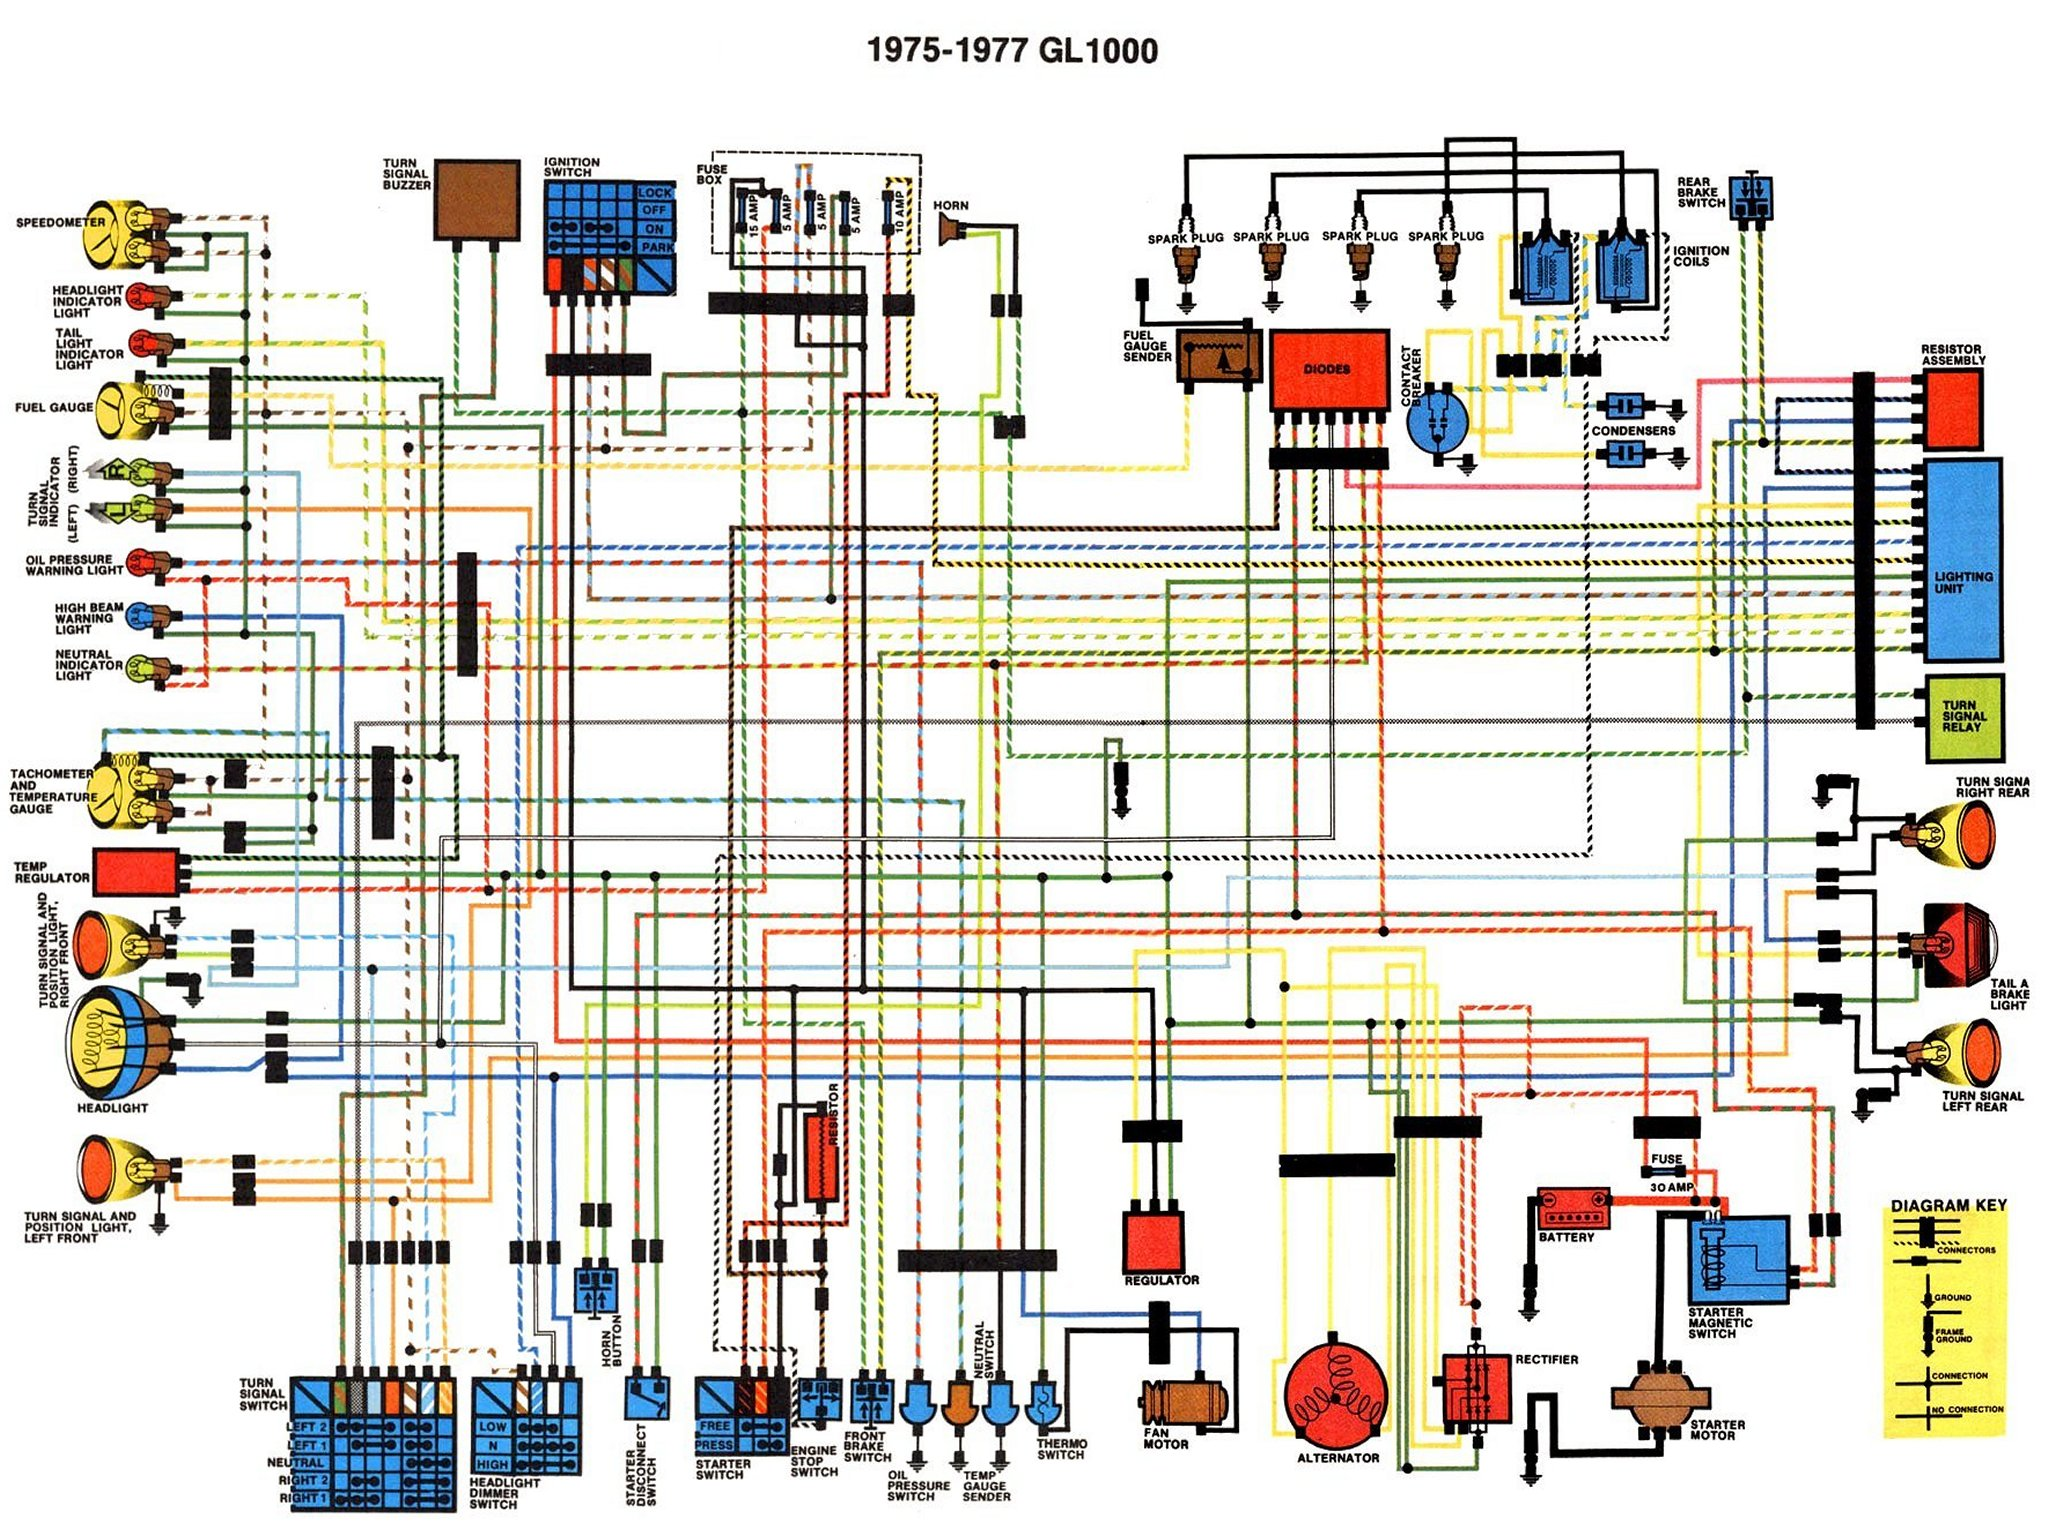 Wiring Diagram For Exiss Trailer - Page 2 - yondo.tech